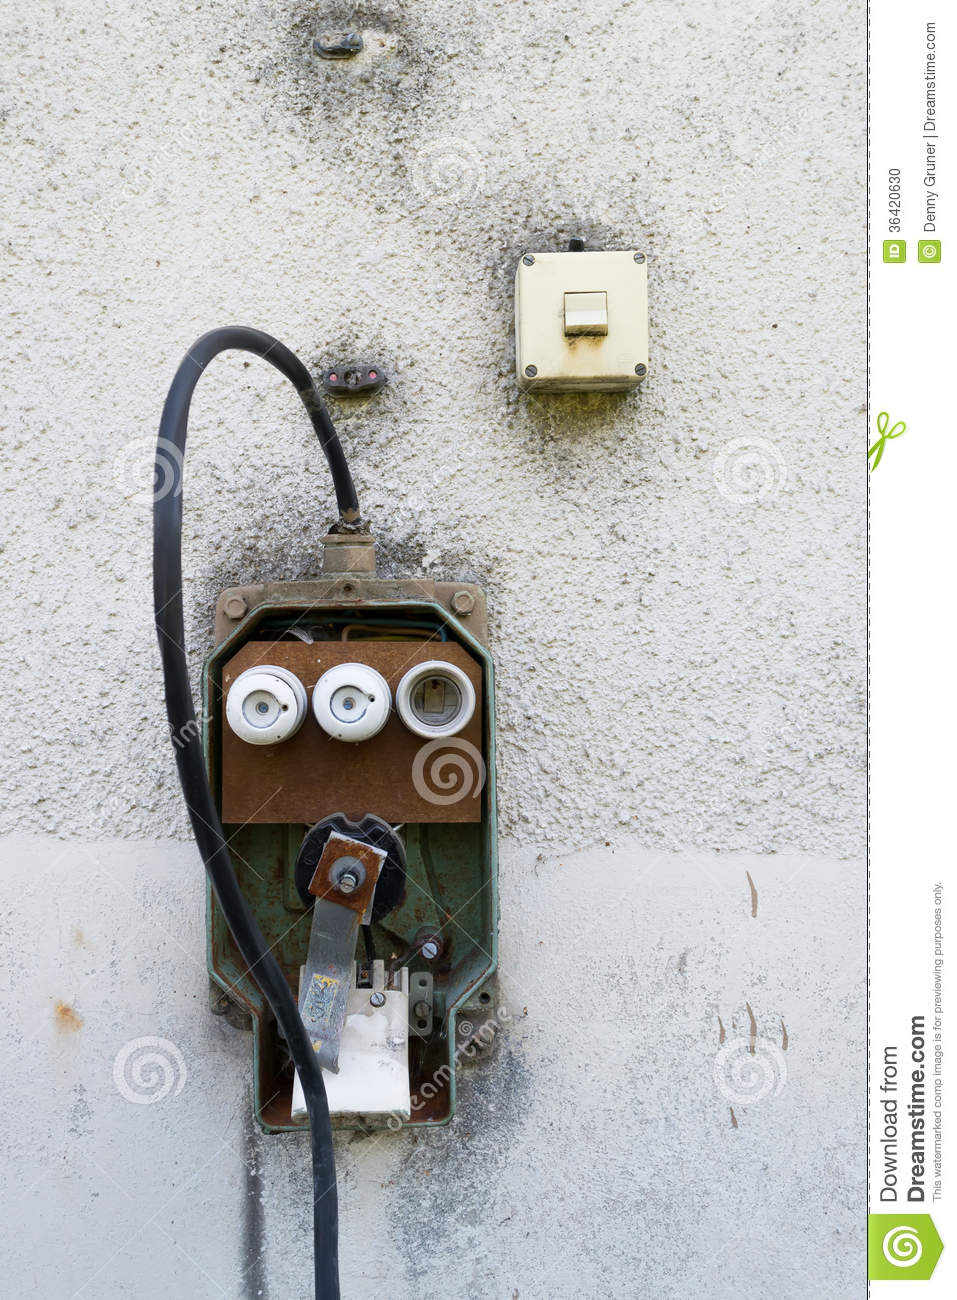 Loose Switch Fuse Box : Fuse box stock photo image of architectural rusty